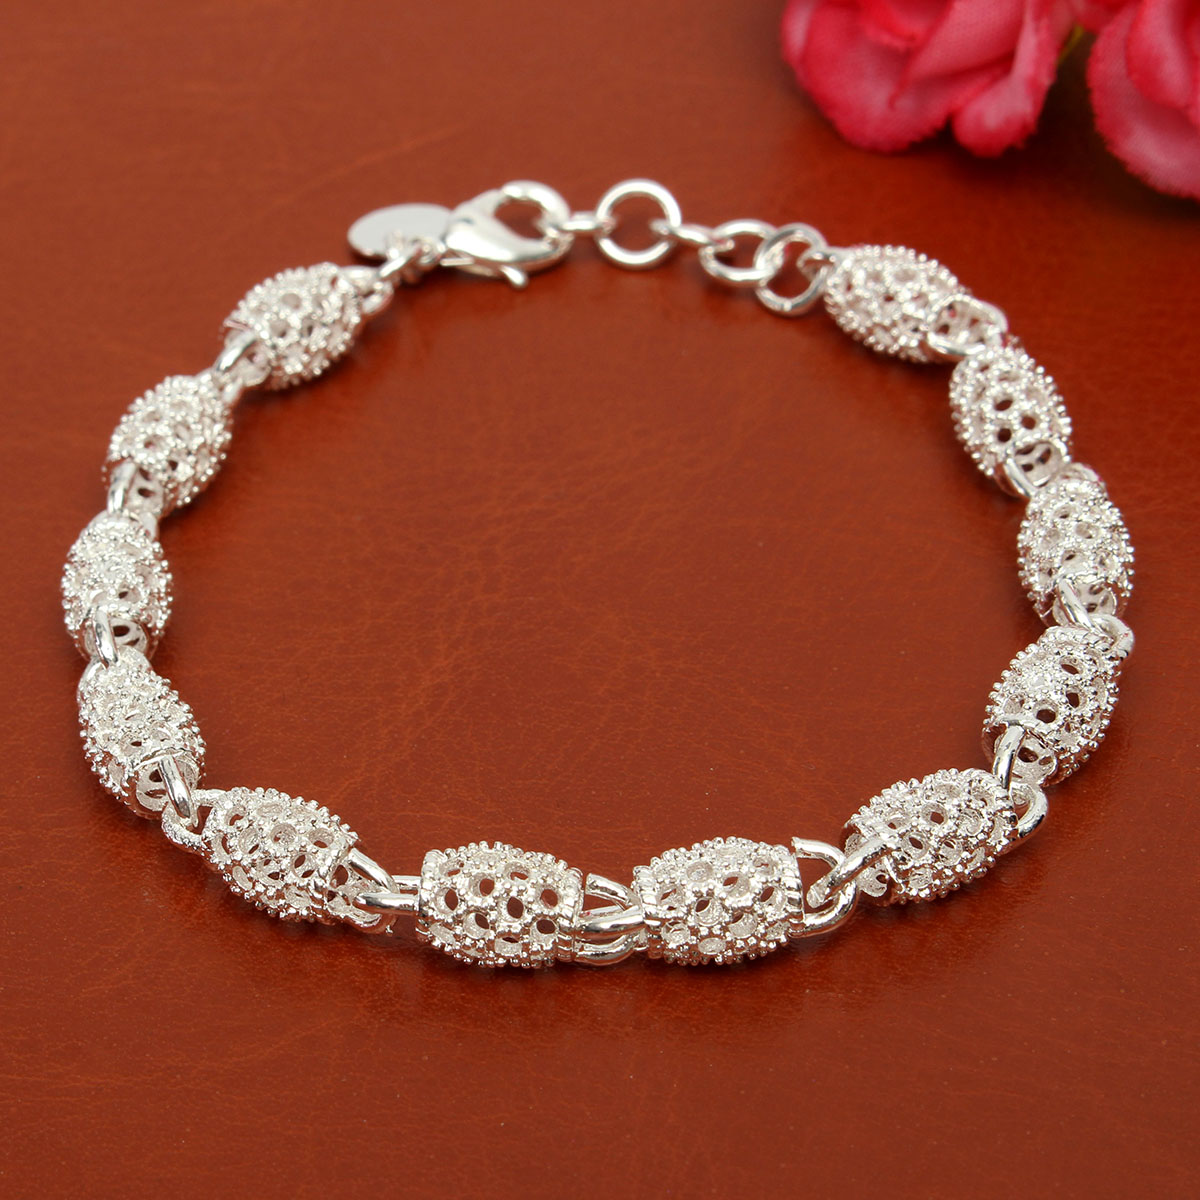 925 Sterling Silver Plated Beads Charm Chain Bracelets For Women